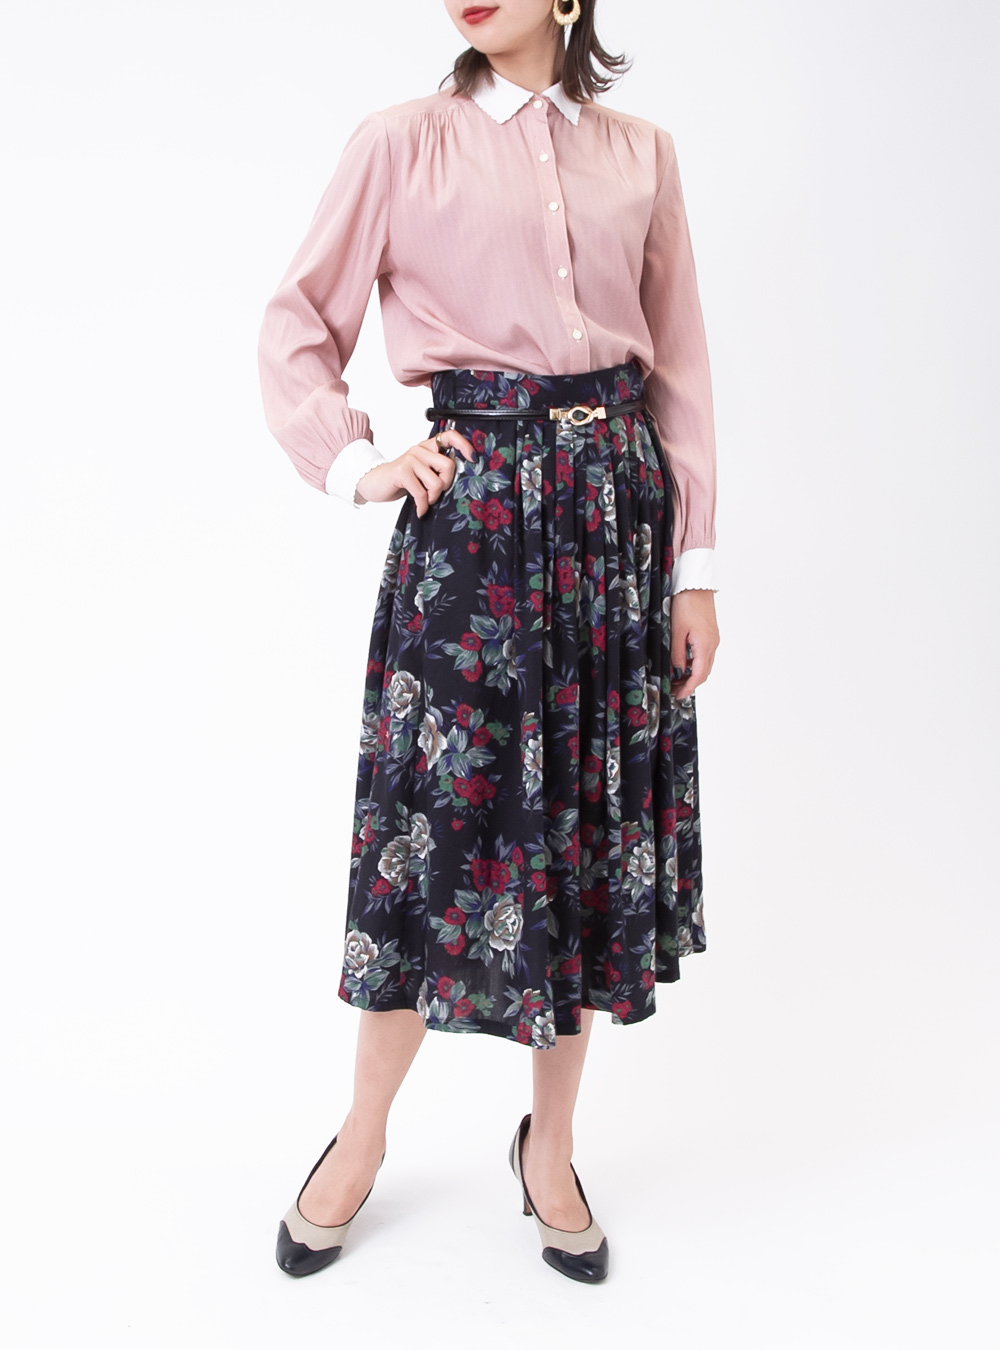 Brilliant Flower Design Black Skirt